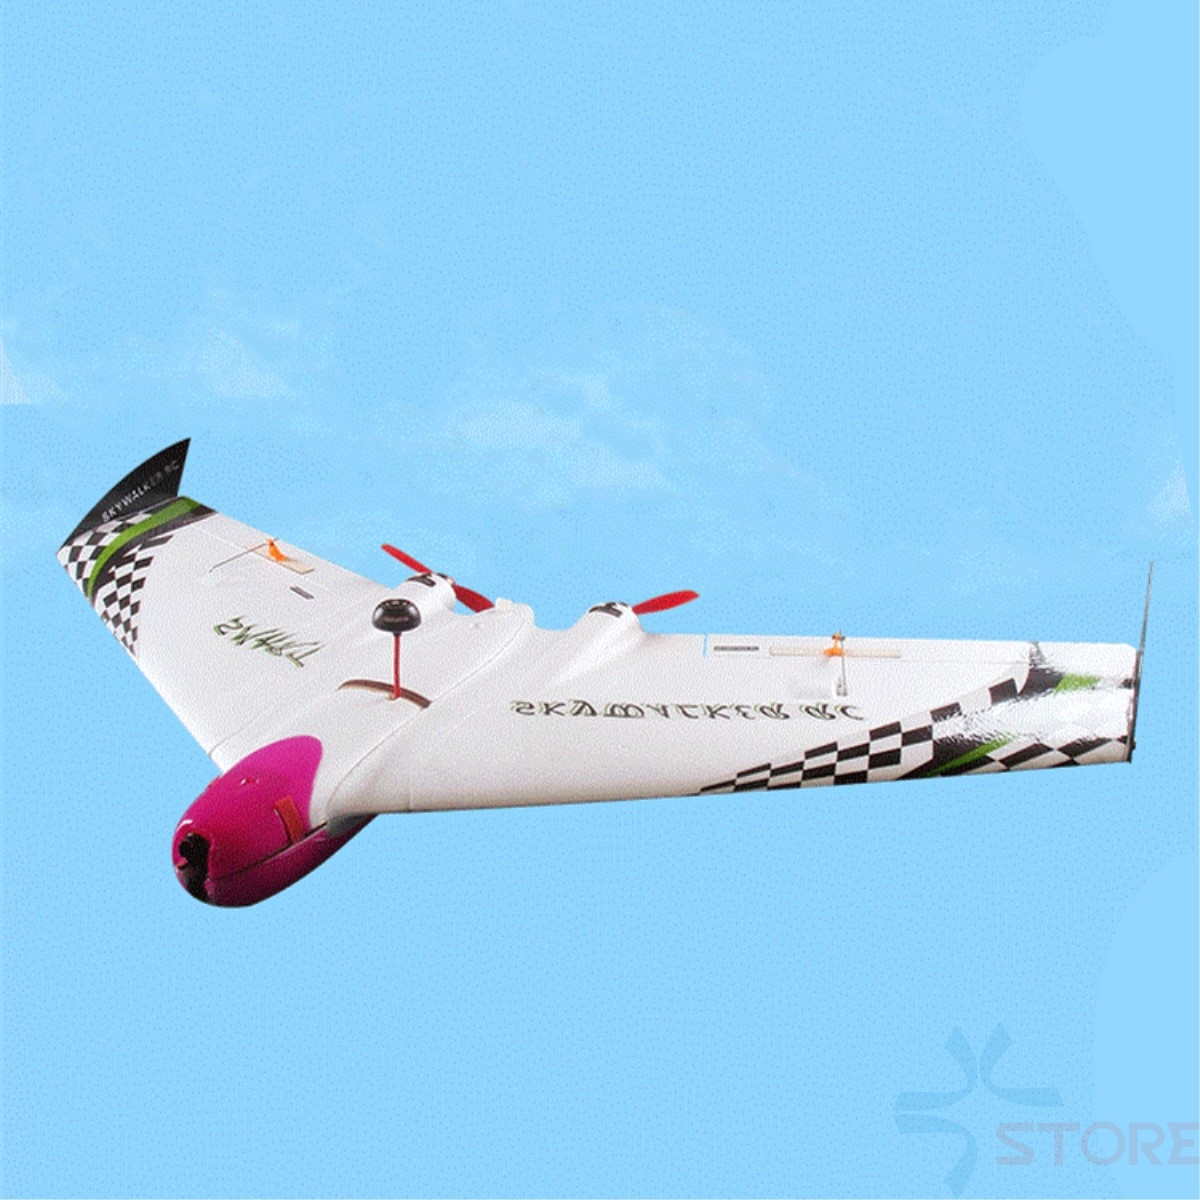 Skywalker SMART 996mm Wingspan EPO Flying Wing For FPV Racing or Long Range Flying RC Airplane Kit x uav mini talon epo 1300mm wingspan v tail fpv rc model radio remote control airplane aircraft kit